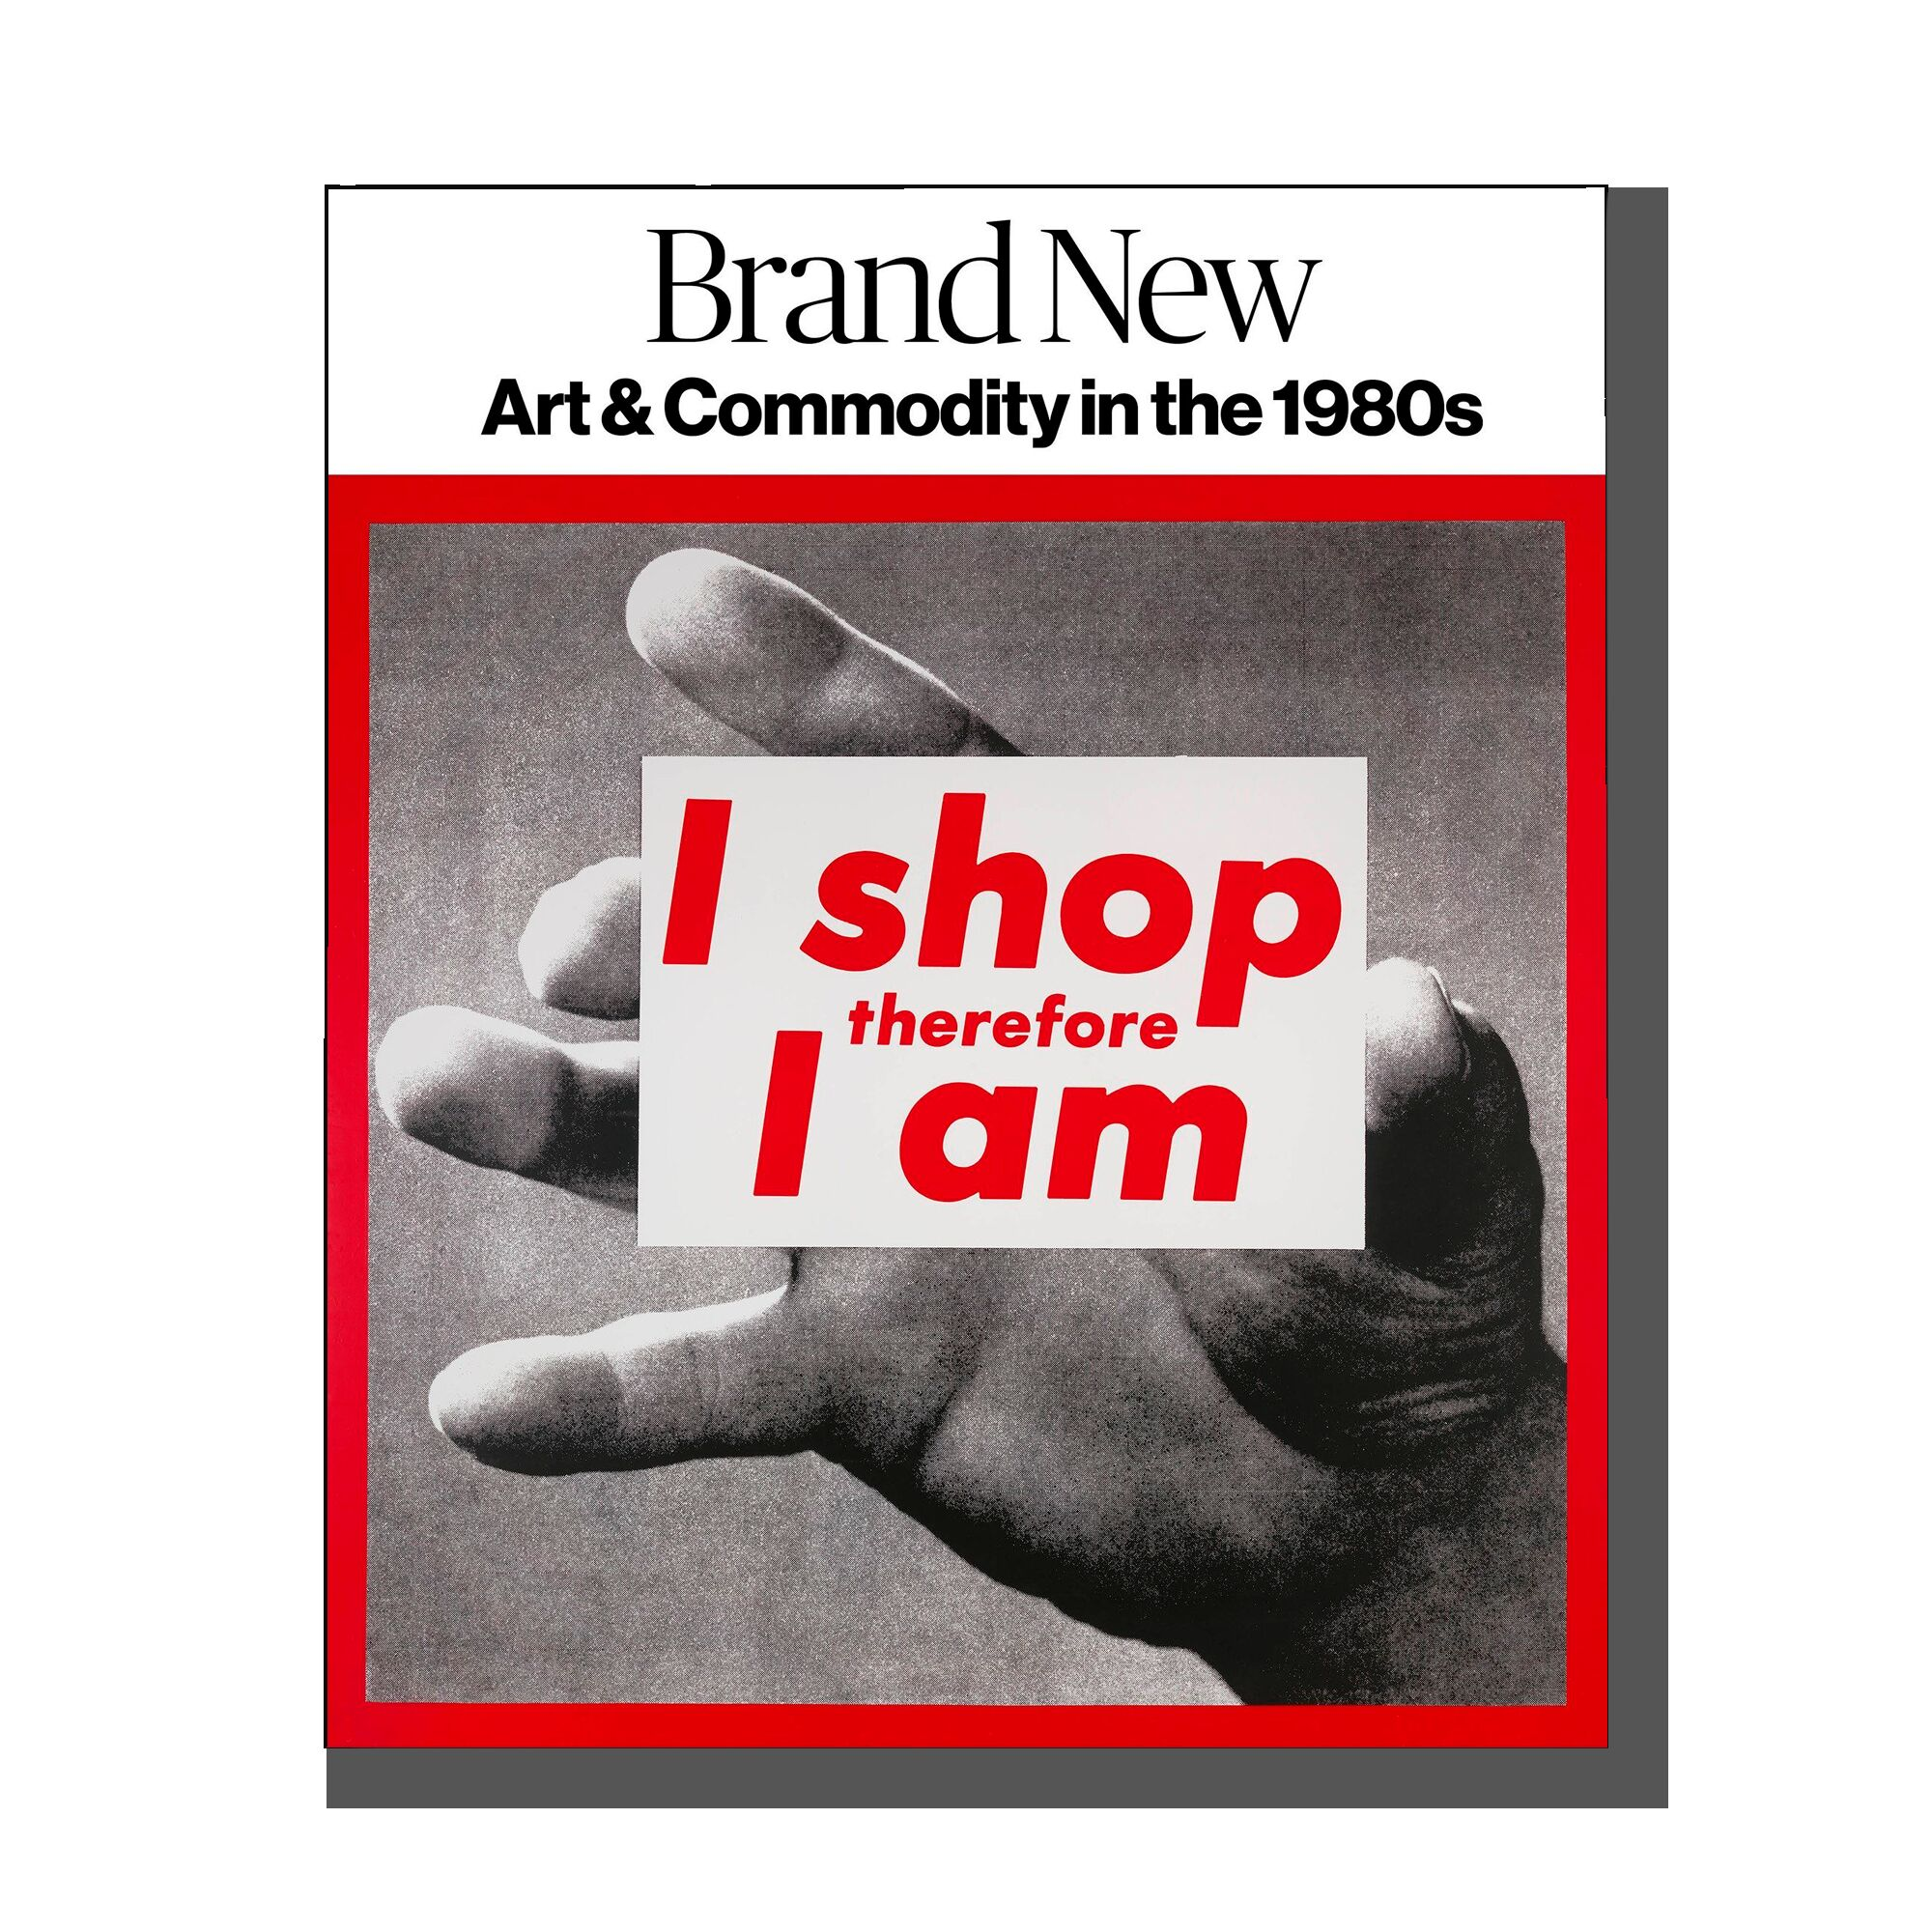 Brand New: Art and Commodity in the 1980s